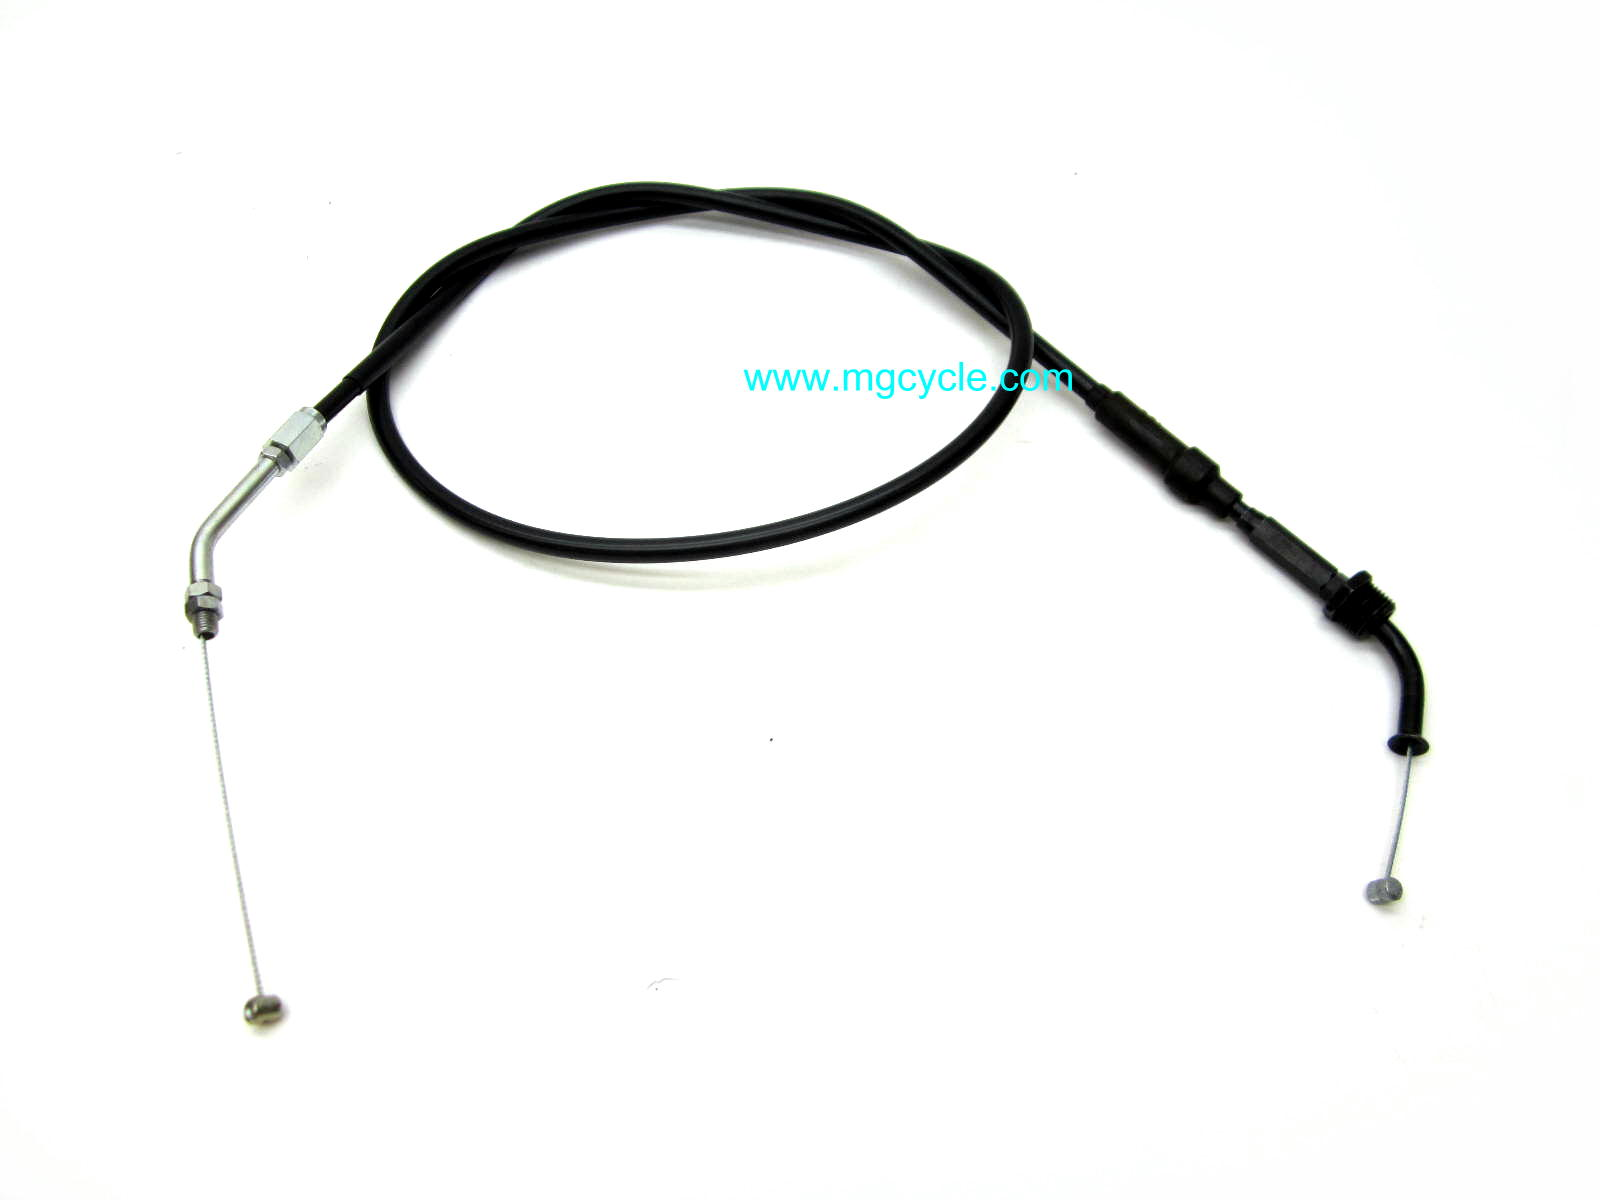 Nevada Classic 750 IE throttle cable 2004-2009